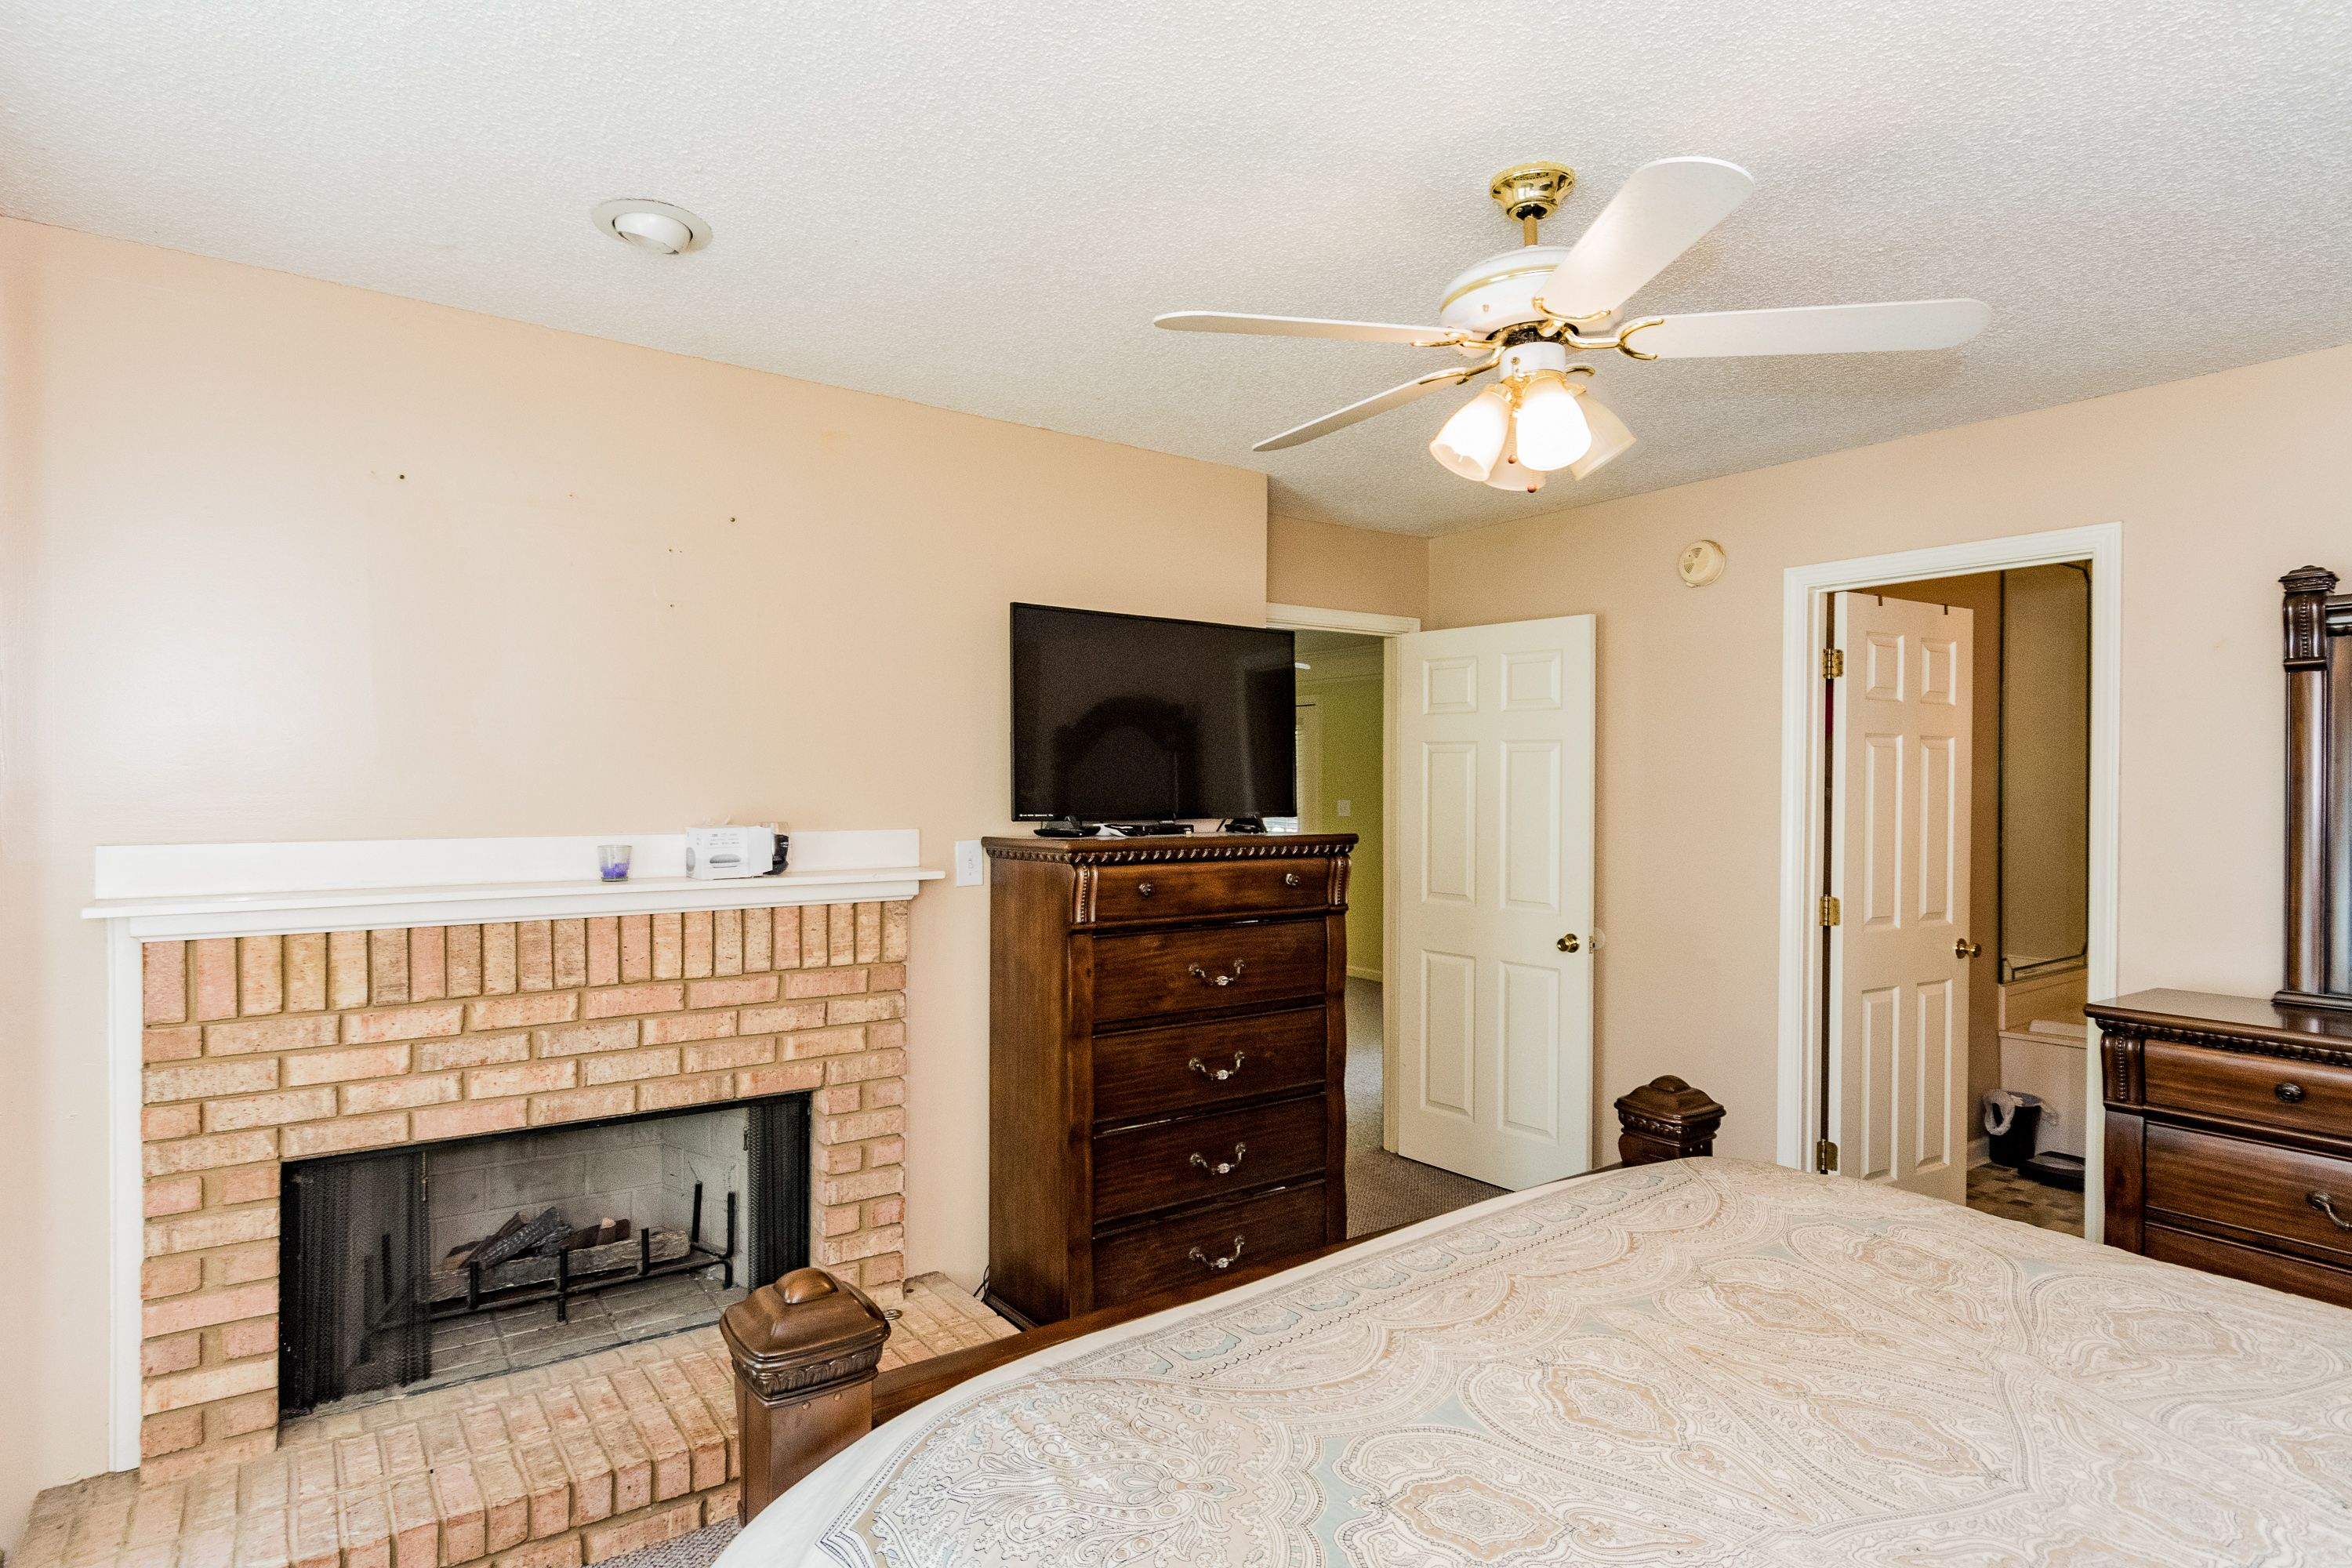 A Cozy Master Bedroom Gets A Punch Of Warmth With A Fireplace Master Bedrooms Decor Bedroom Decor